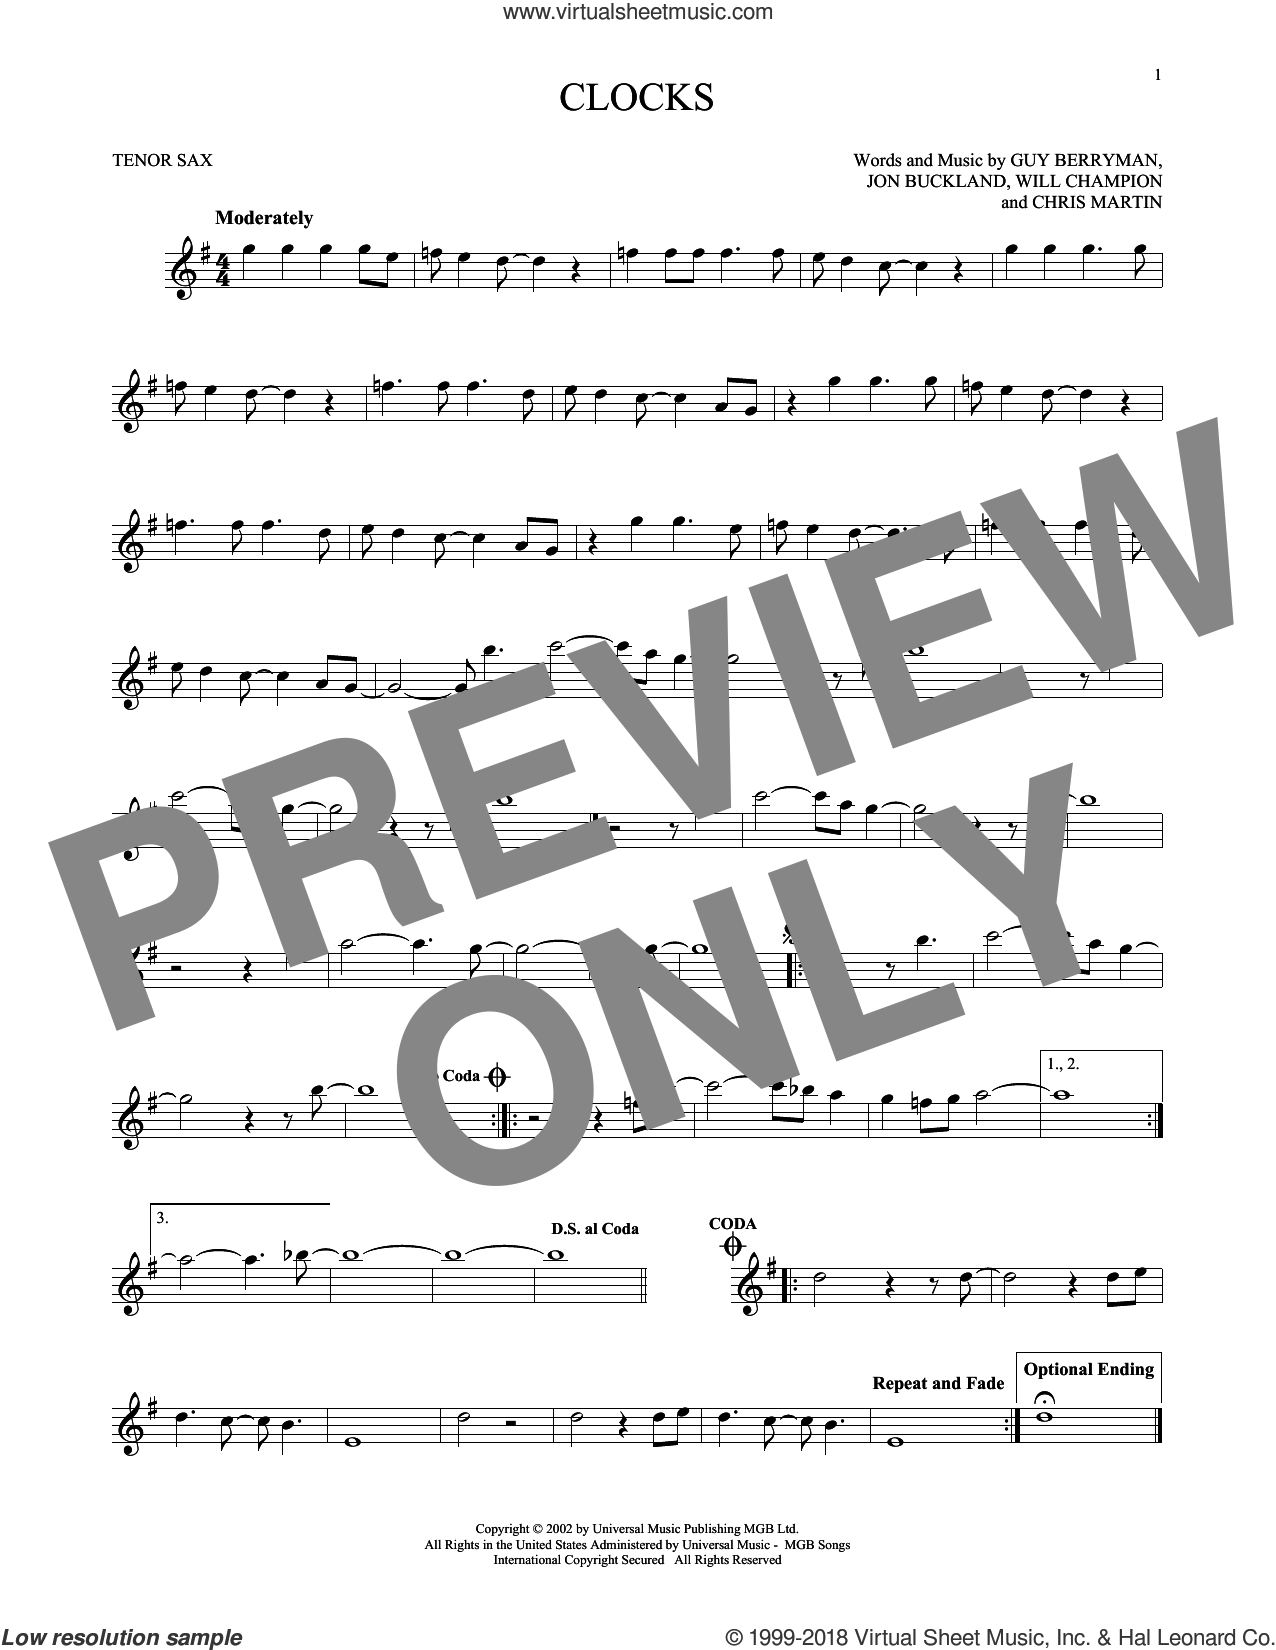 Clocks sheet music for tenor saxophone solo by Coldplay, Chris Martin, Guy Berryman, Jon Buckland and Will Champion, intermediate skill level